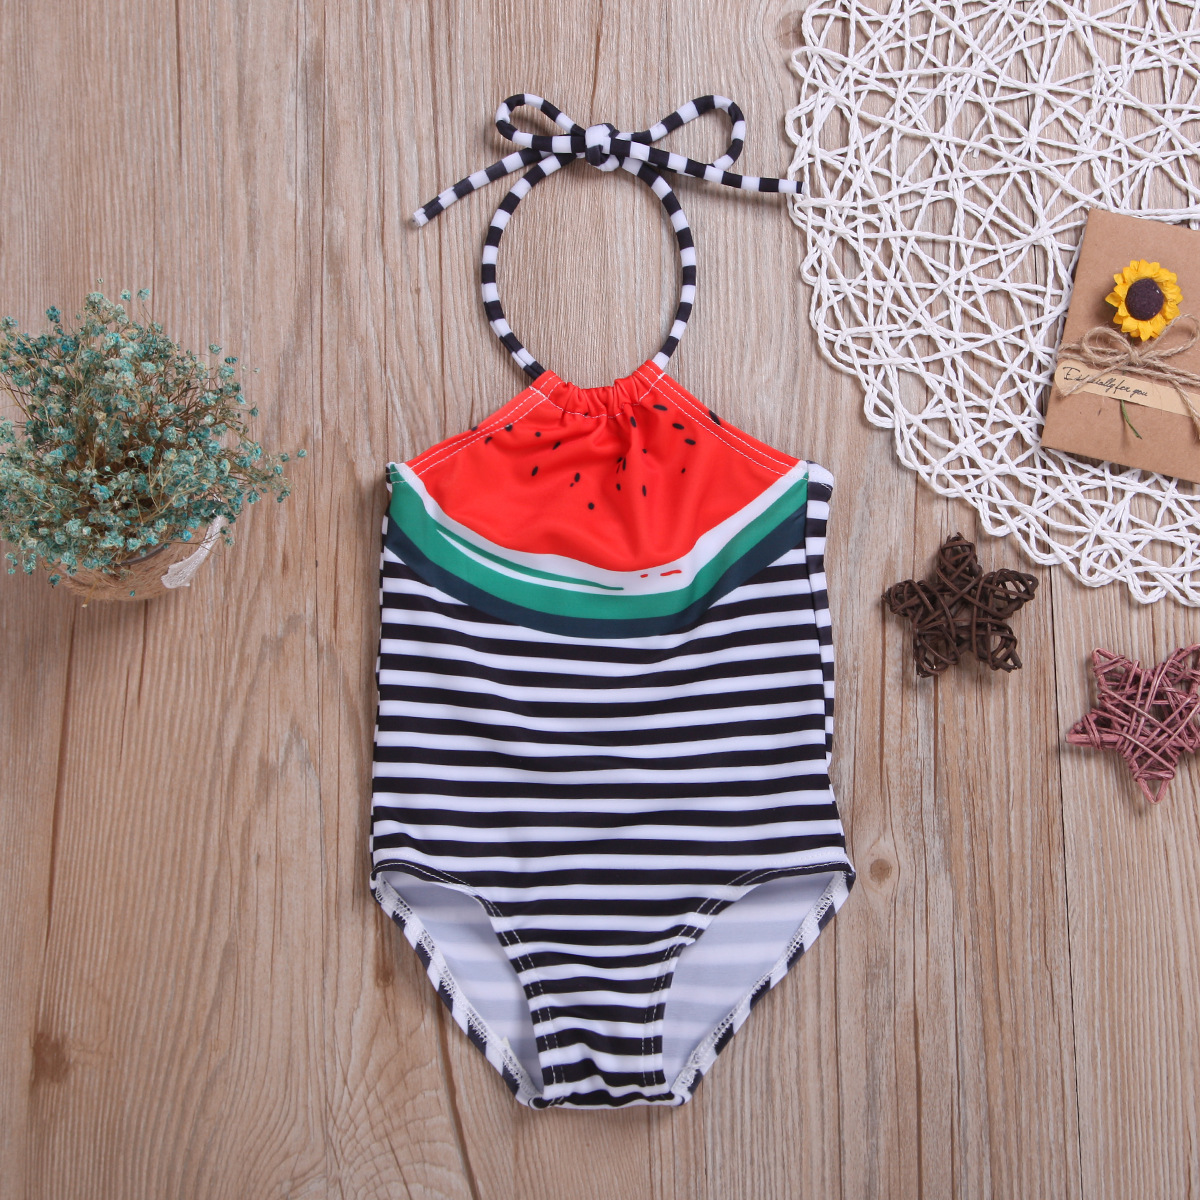 Childrenswear Summer Kid's Swimwear Watermelon Printed Girls Camisole Stripes One-piece Swimming Suit